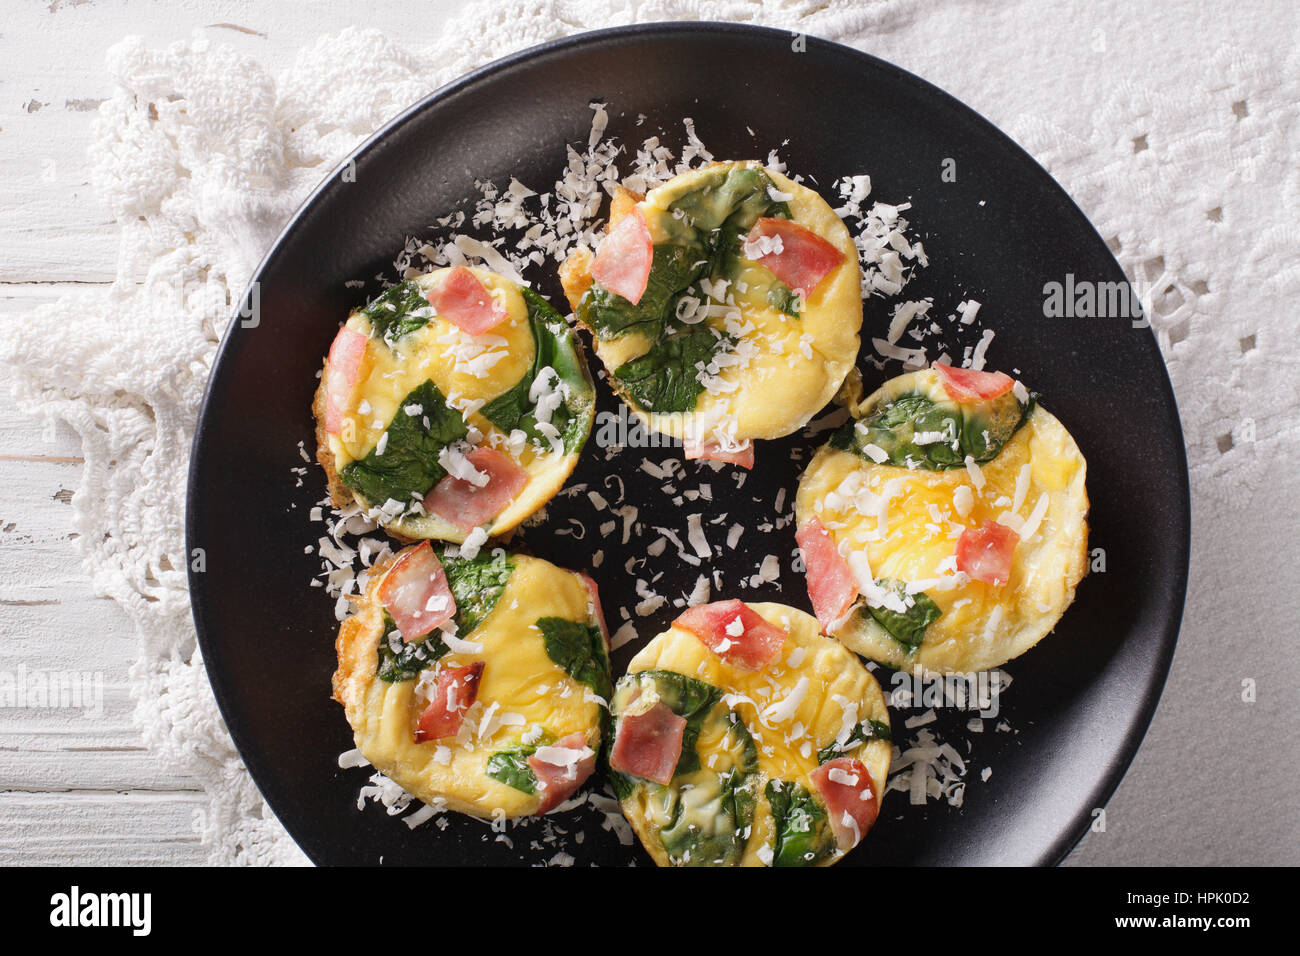 frittata with spinach, ham and cheese on a plate close-up on the table. horizontal view from above - Stock Image